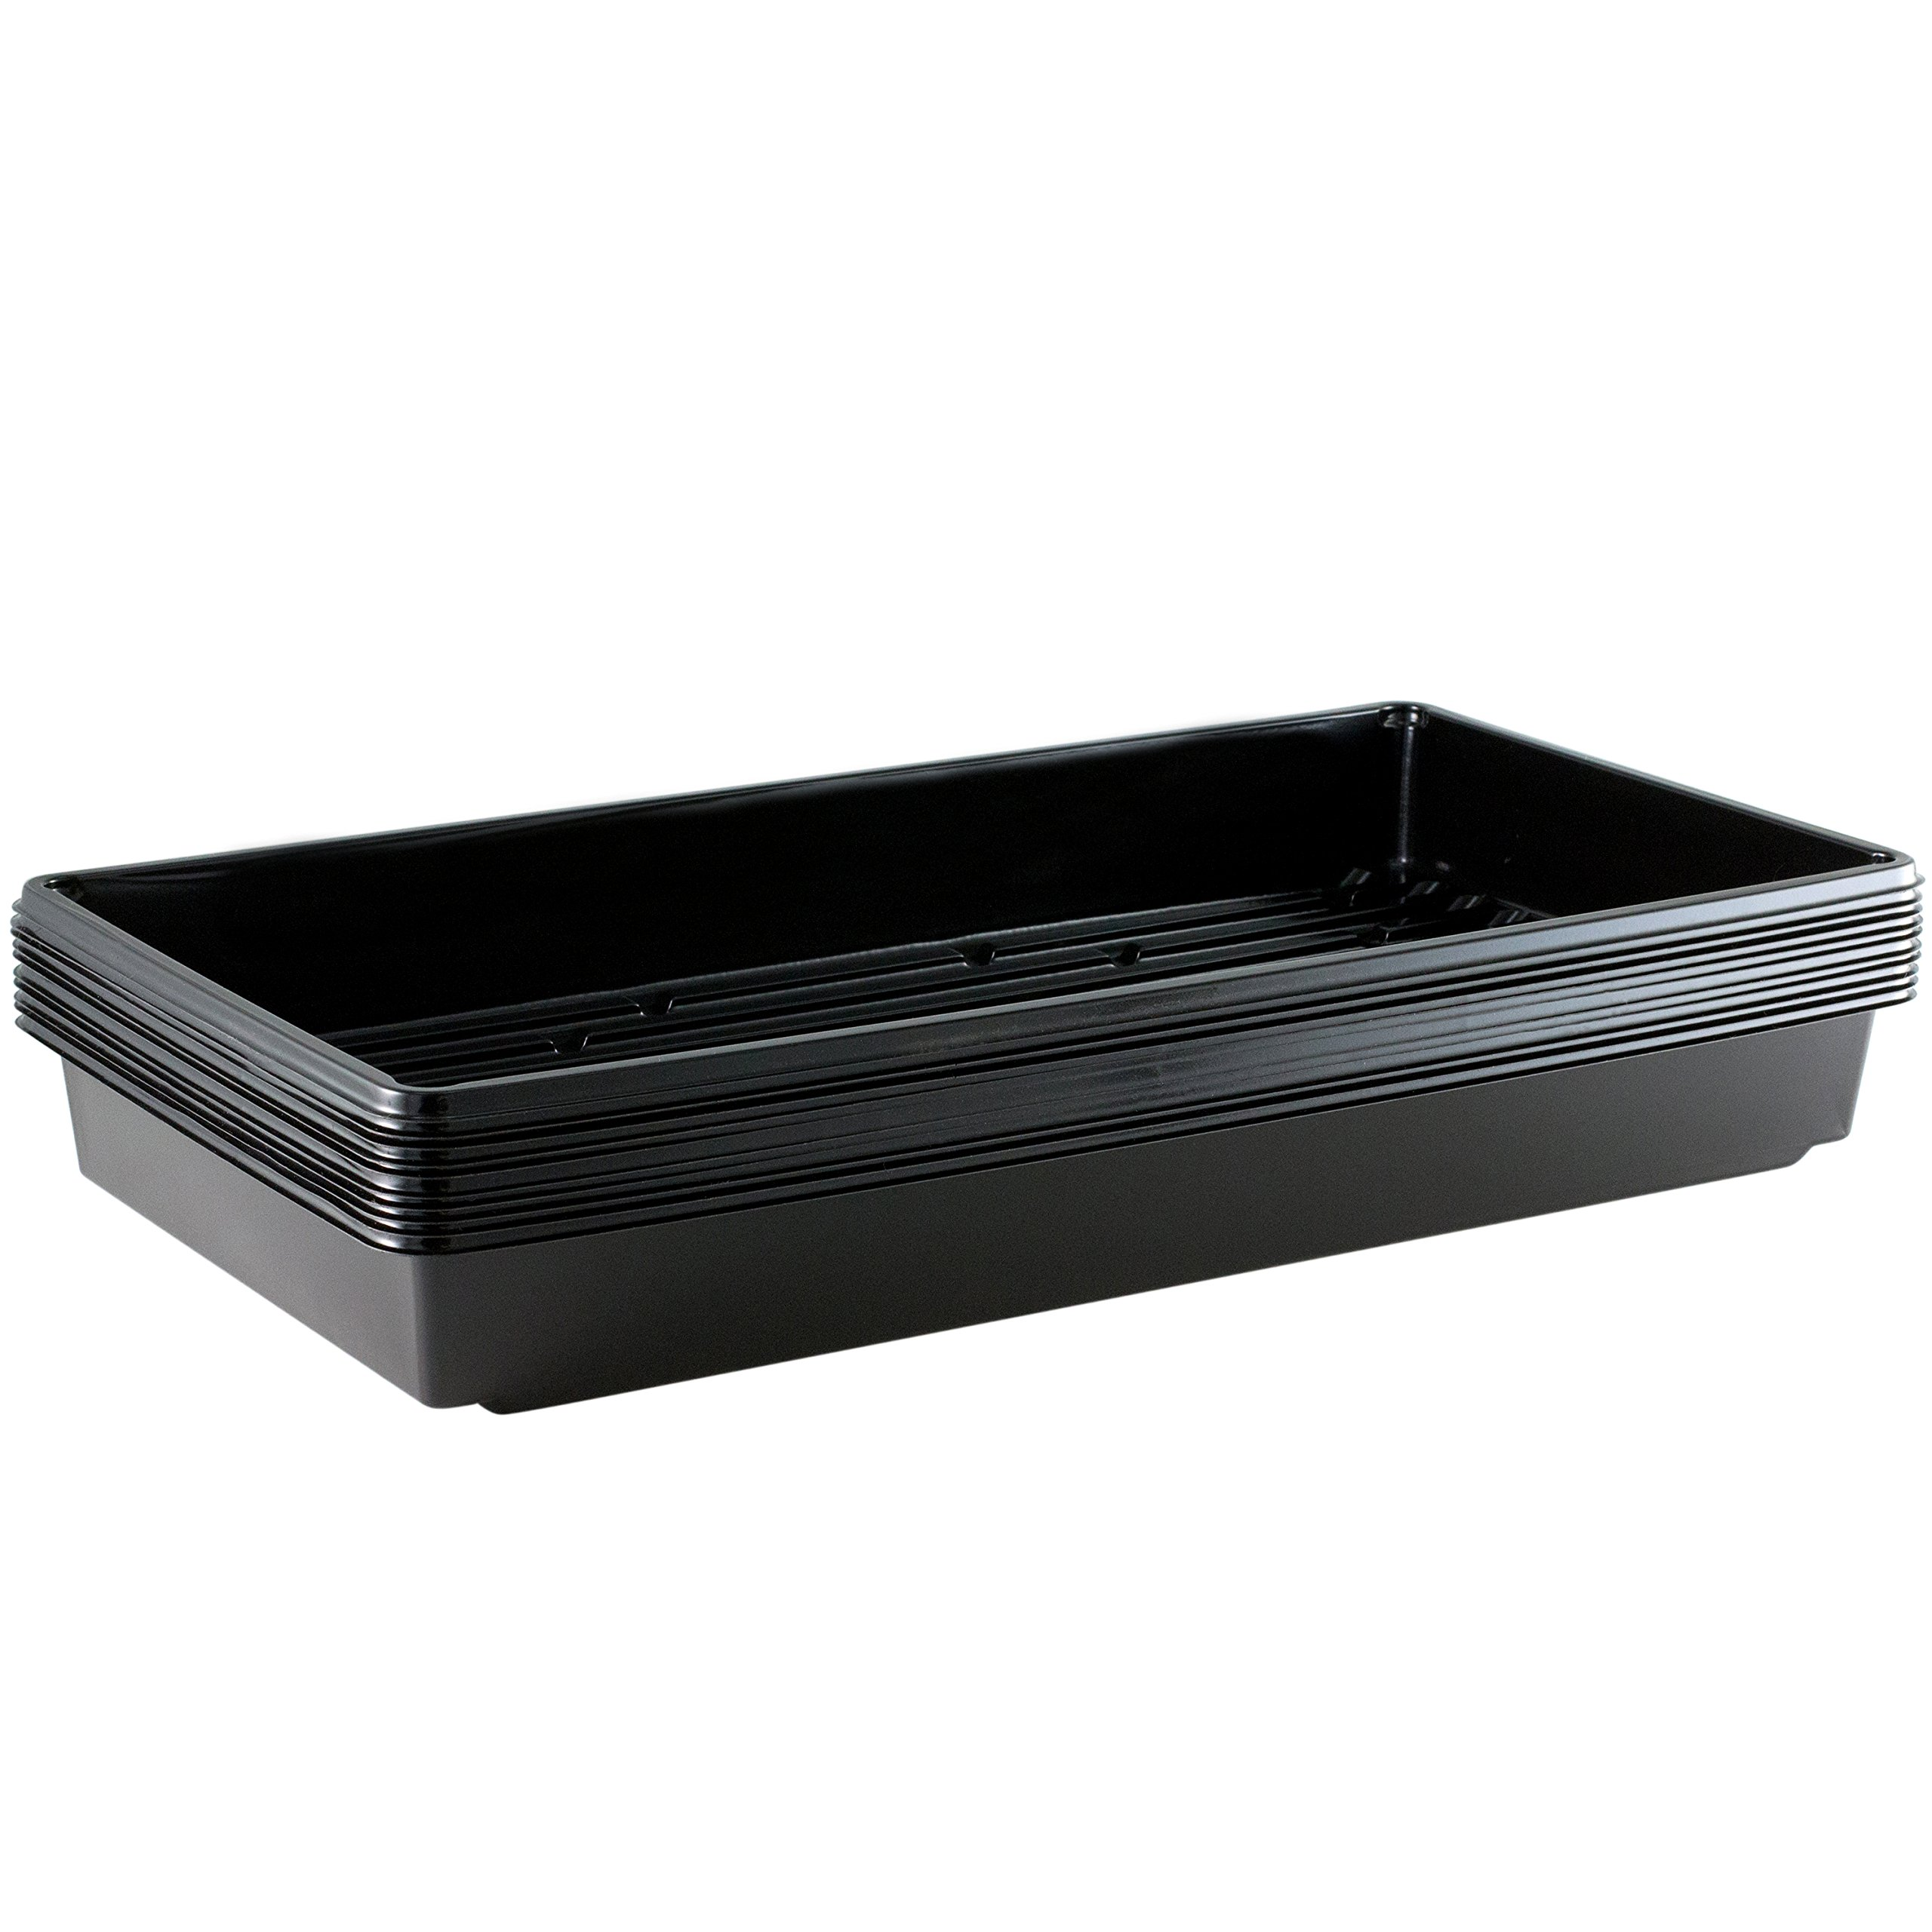 Yield Lab 10 x 20 Inch Black Plastic Propagation Tray (10 Pack) - Hydroponic, Aeroponic, Horticulture Growing Equipment by Yield Lab